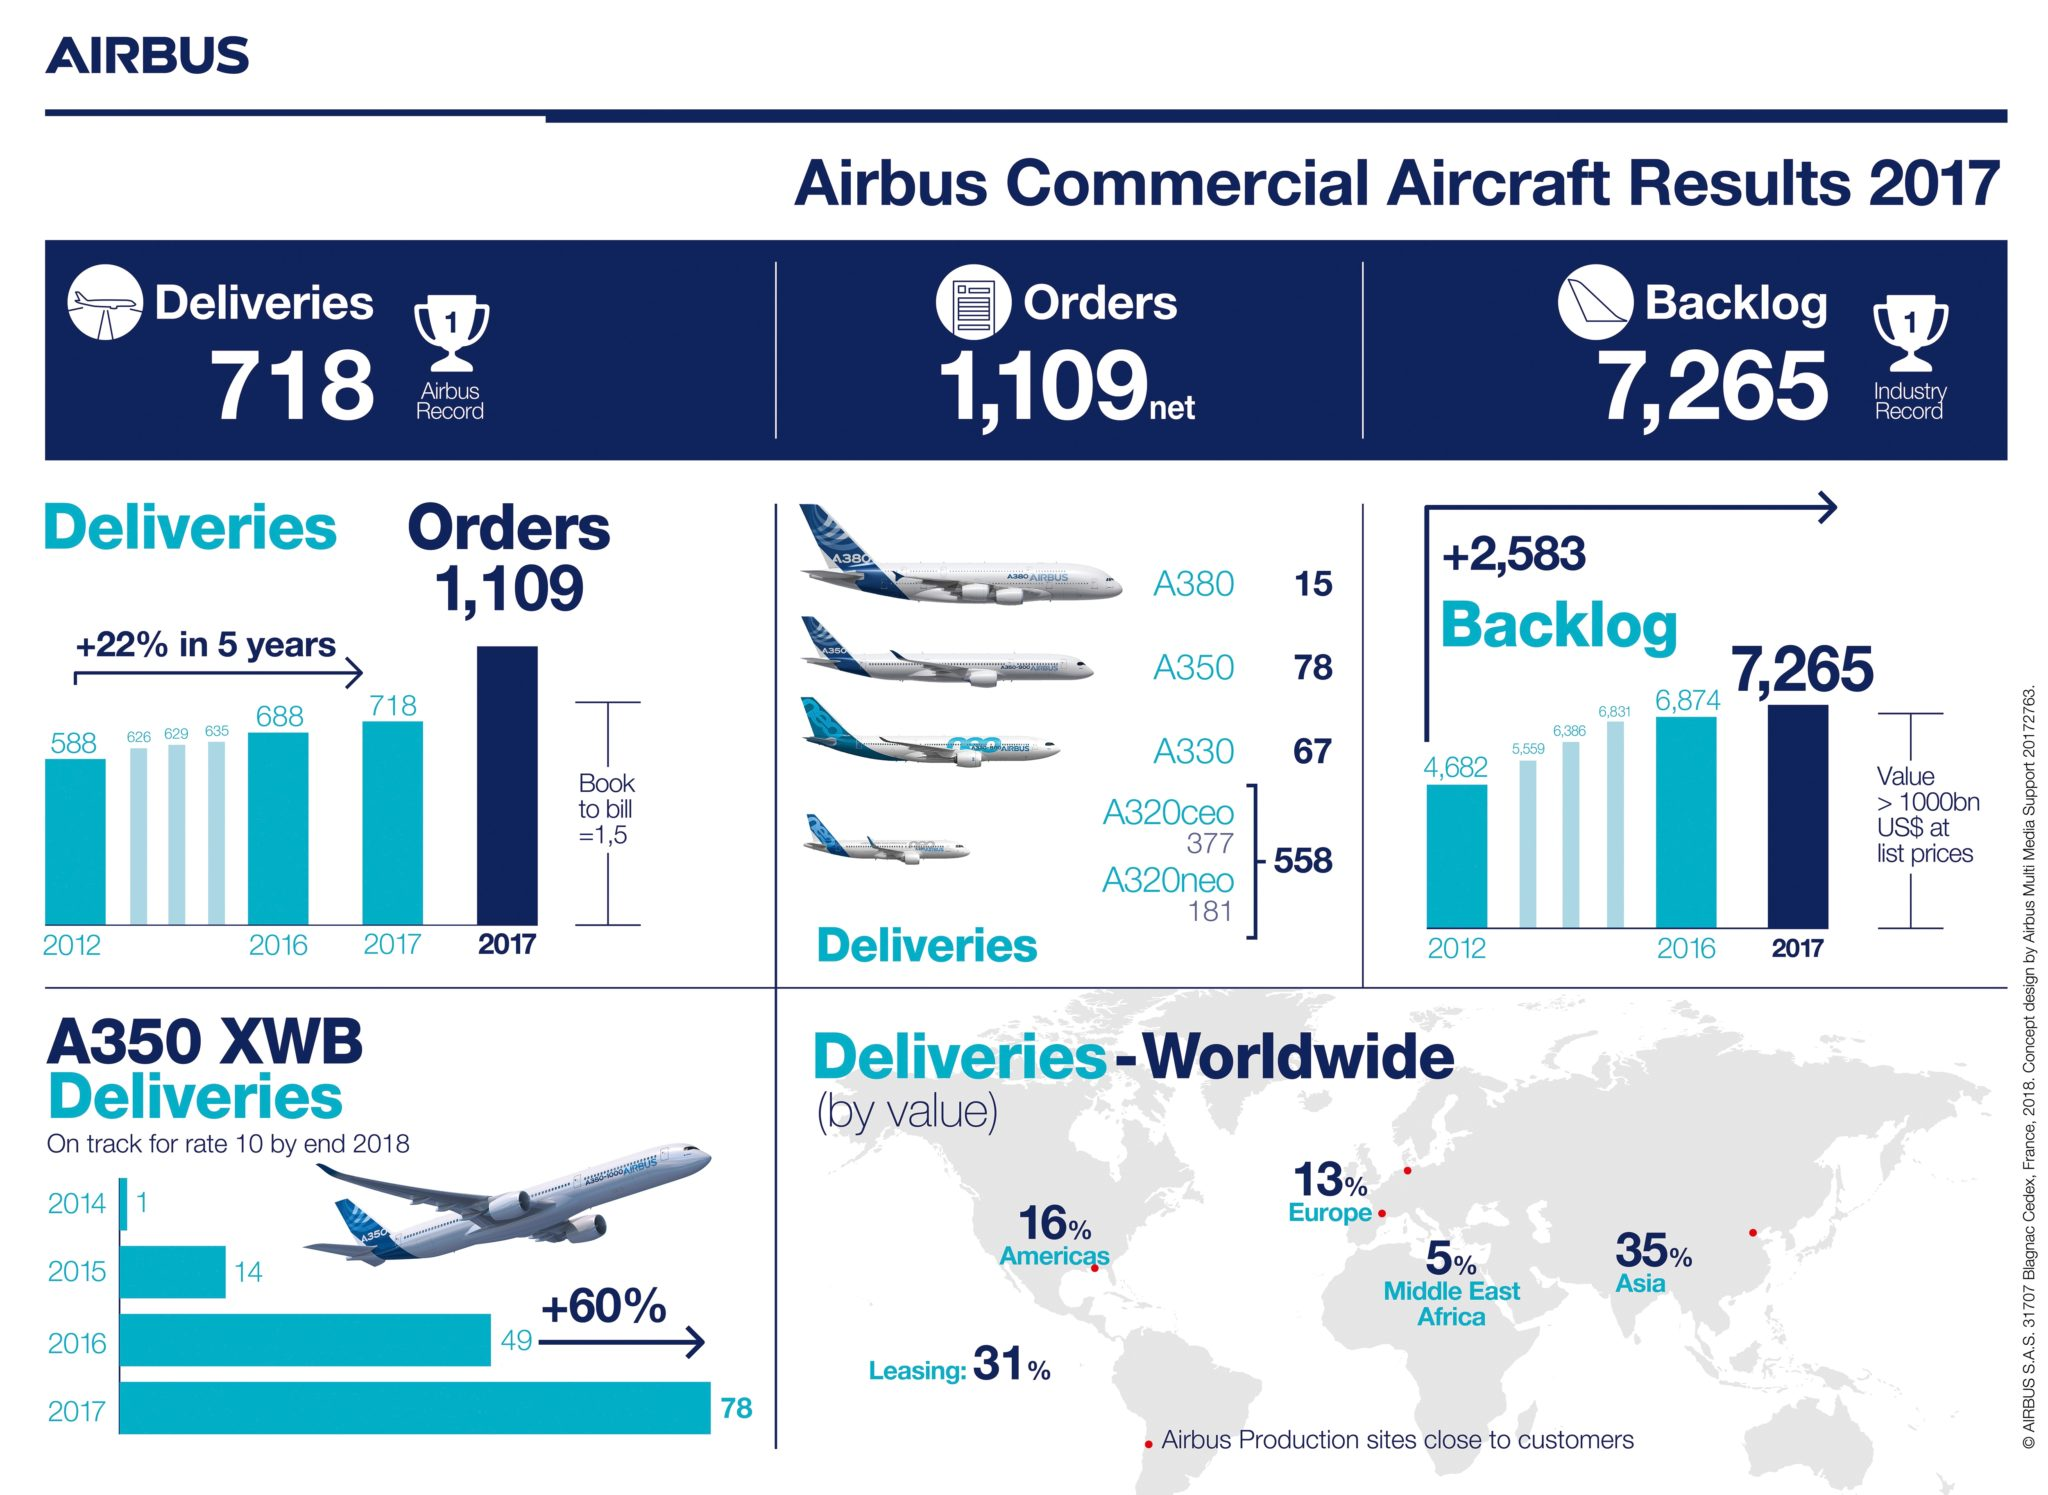 Airbus delivers record 718 aircraft amid strong sales